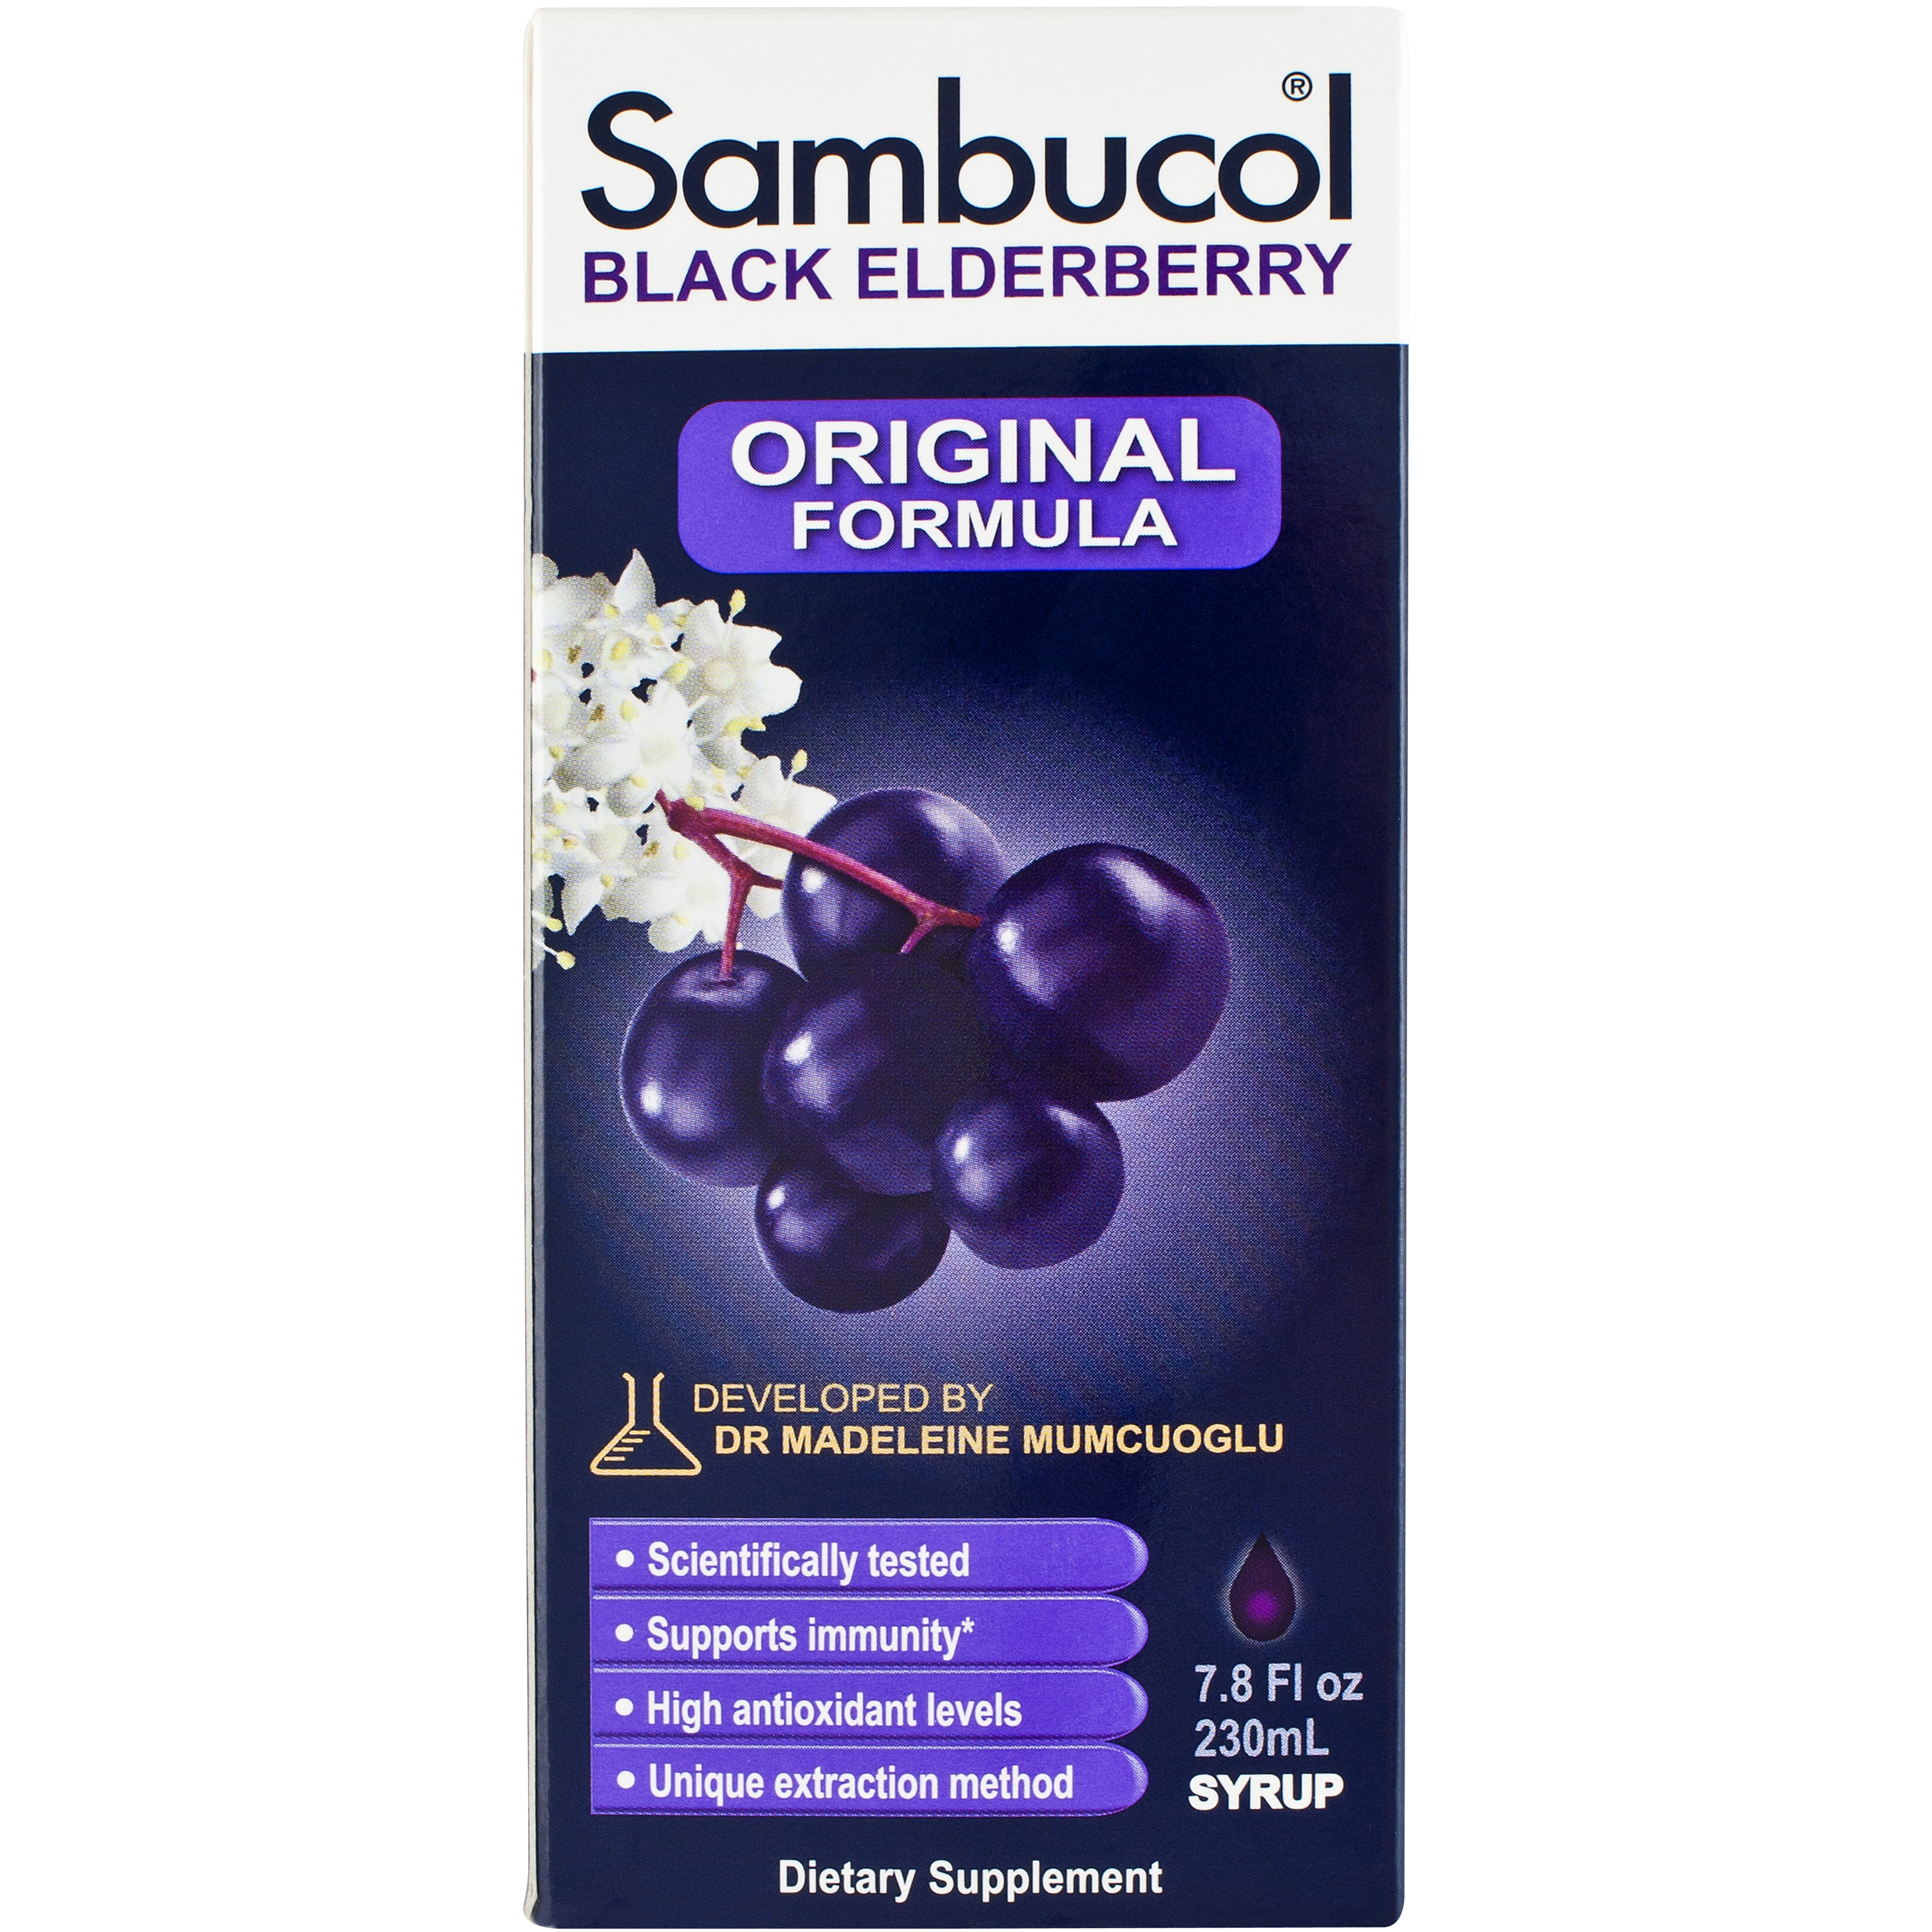 Sambucol Black Elderberry Original Formula Dietary Supplement Syrup, 7.8 FL OZ